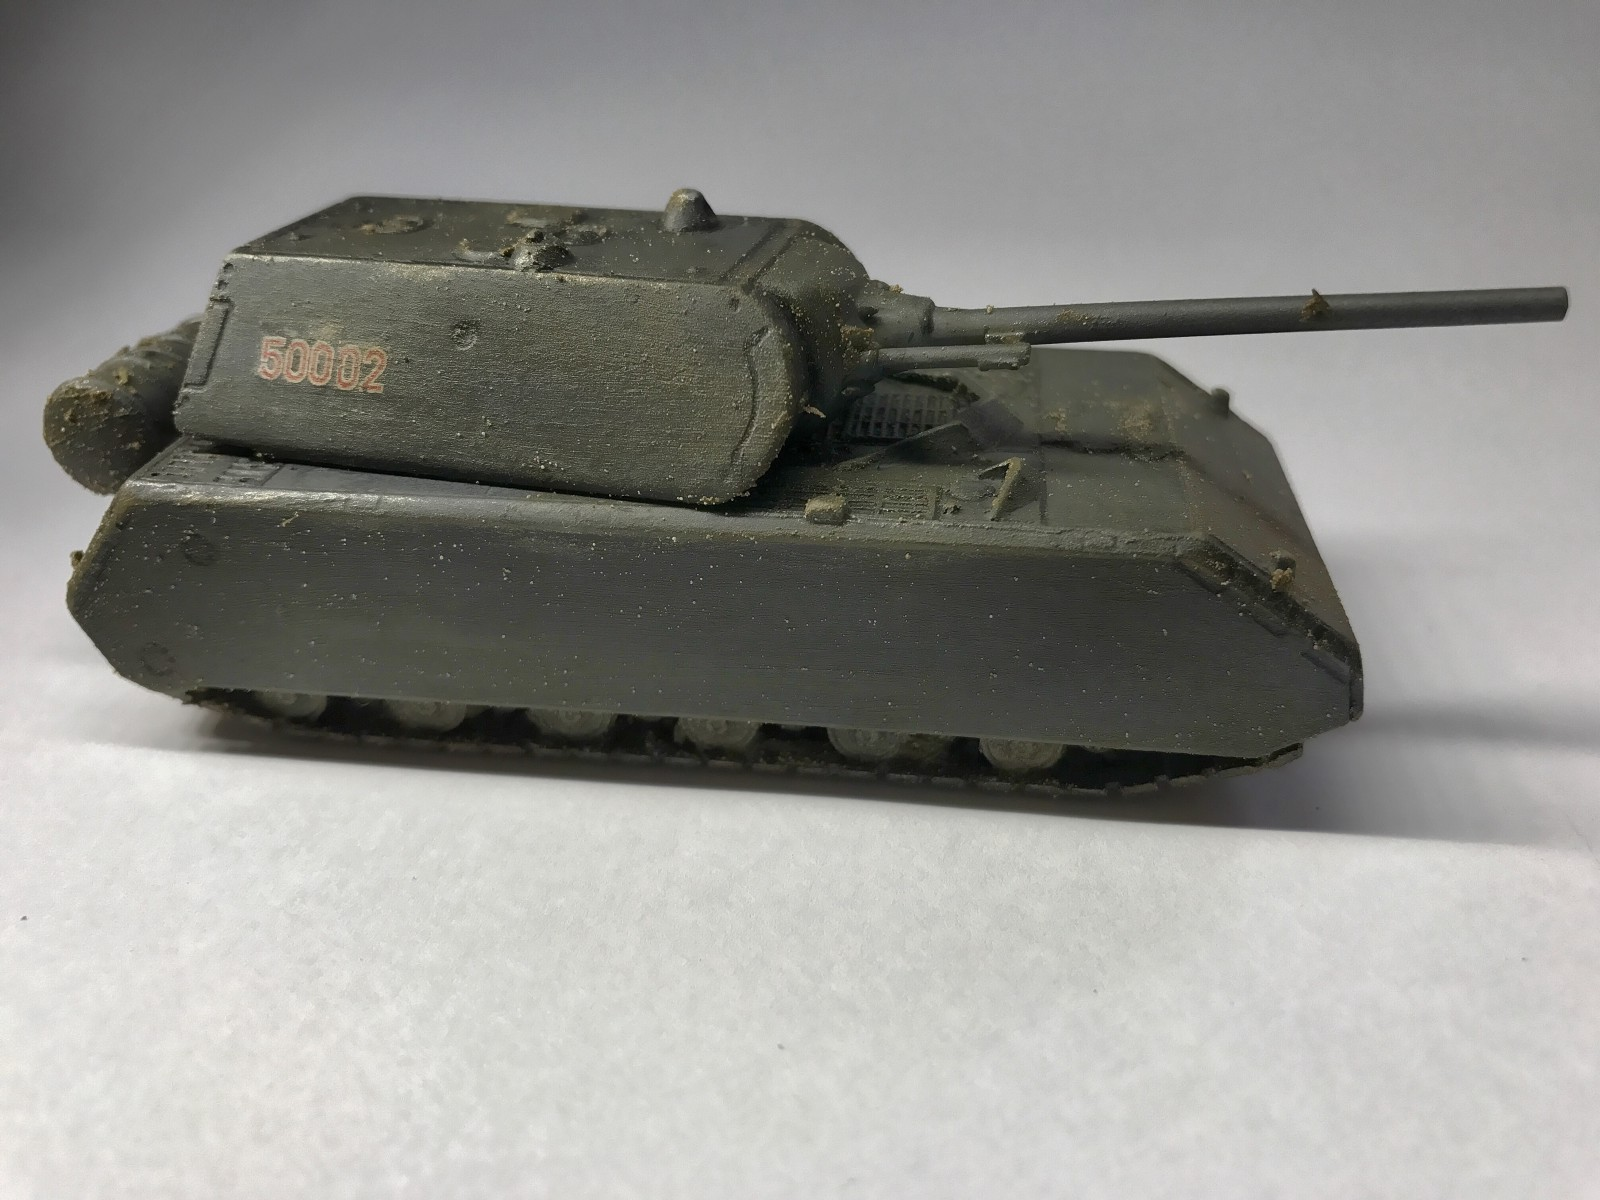 German Tanks In The 1940s Brilliant Engineering Cant Work With Modern Tank Schematics Maus Possibly Most Ironic Name Used Development Was Only Made 2 Prototypes